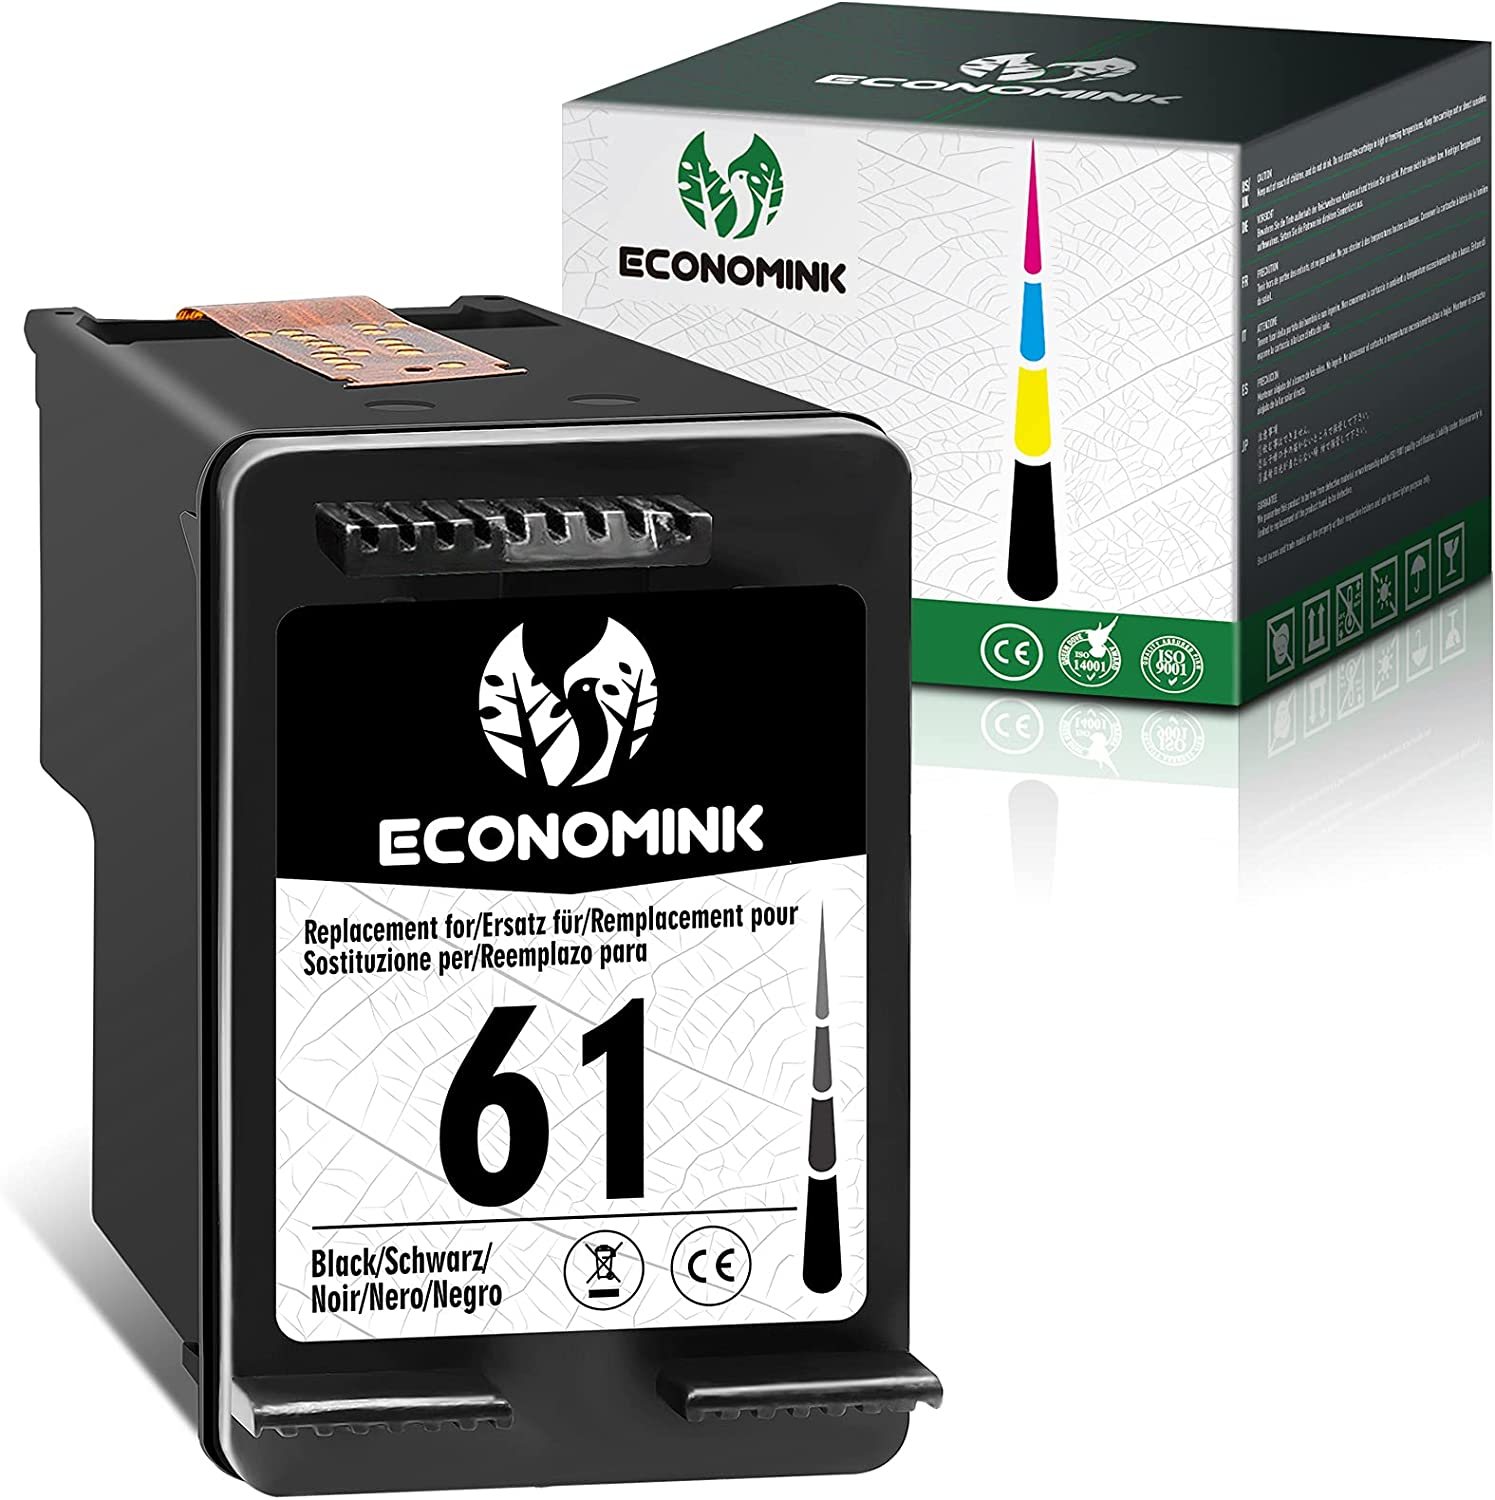 Economink Remanufactured Ink Cartridges Replacement for HP 61 Black HP61 to use with Envy 4500 4502 5530 DeskJet 2512 1512 2542 2540 2544 3000 3052a 1055 3051a 2548 OfficeJet 4630 Printer(1 Pack)